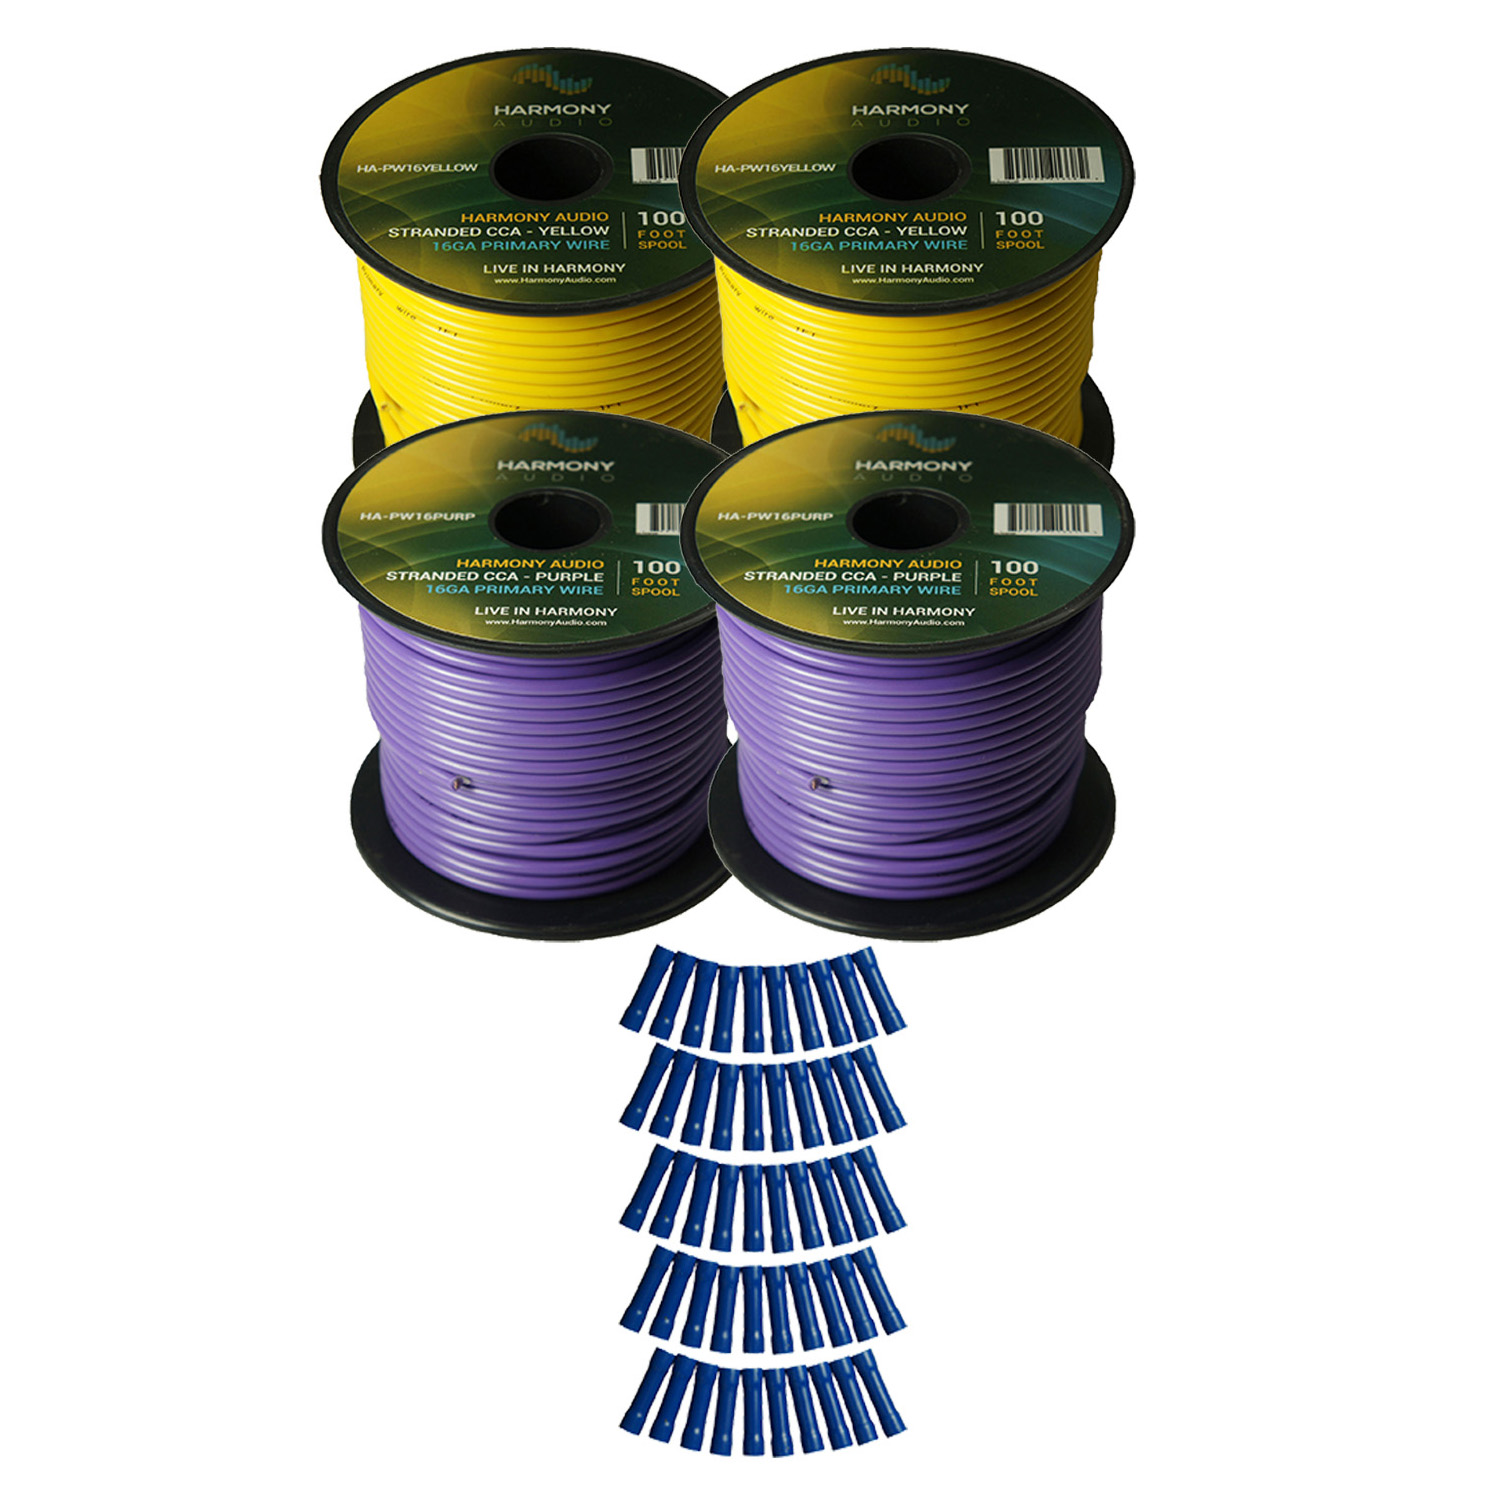 Harmony Audio Primary Single Conductor 16 Gauge Power or Ground Wire - 4 Rolls - 400 Feet - Yellow & Purple for Car Audio / Trailer / Model Train / Remote